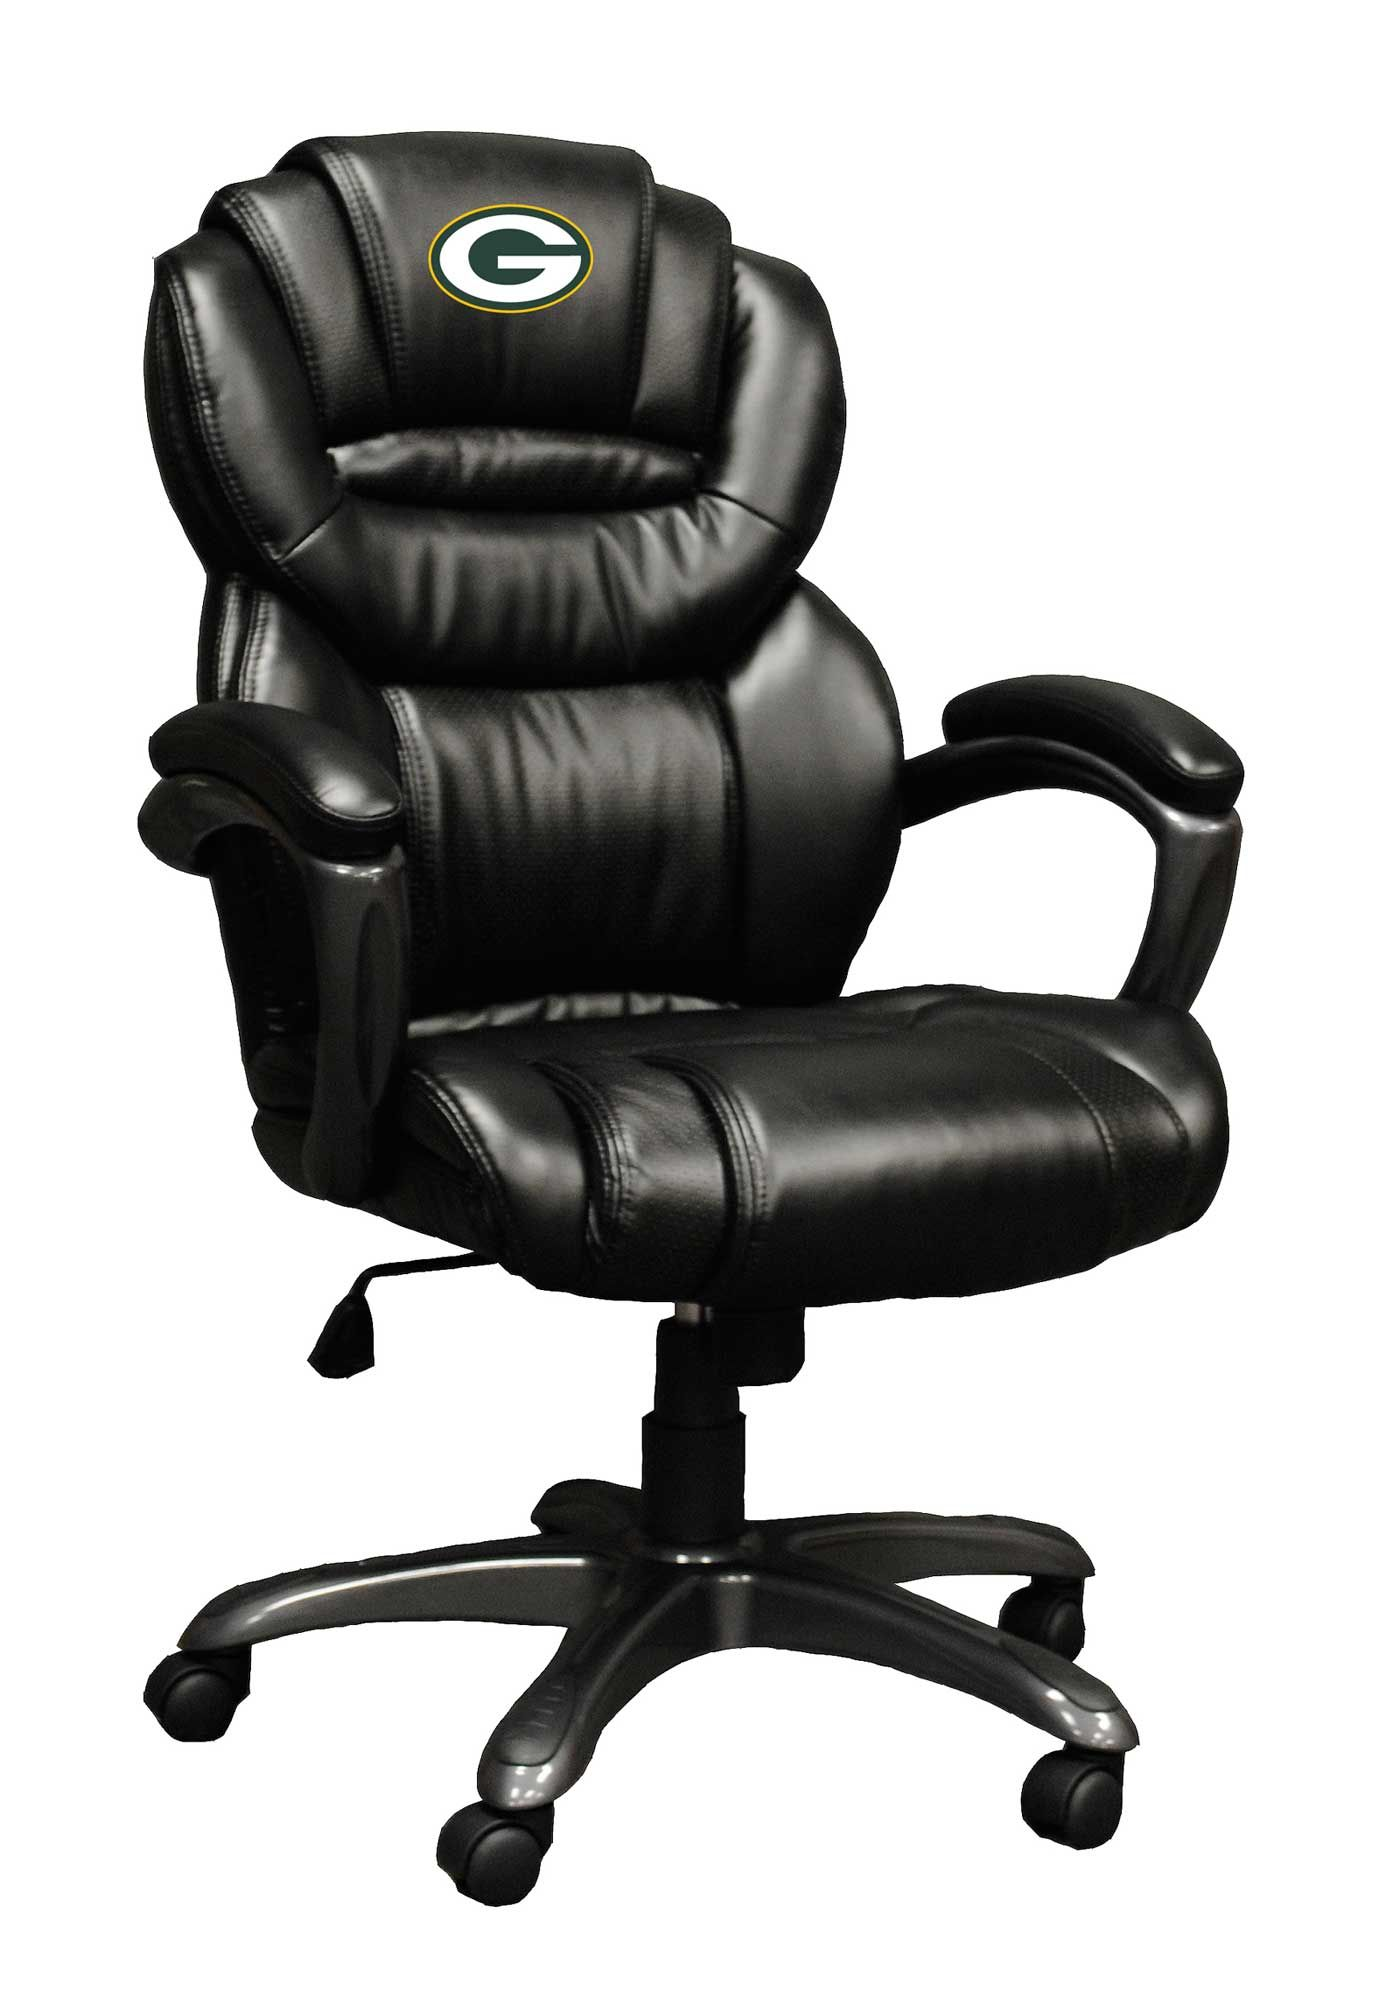 Luxury Executive Office Leather Computer Chair Office Chair